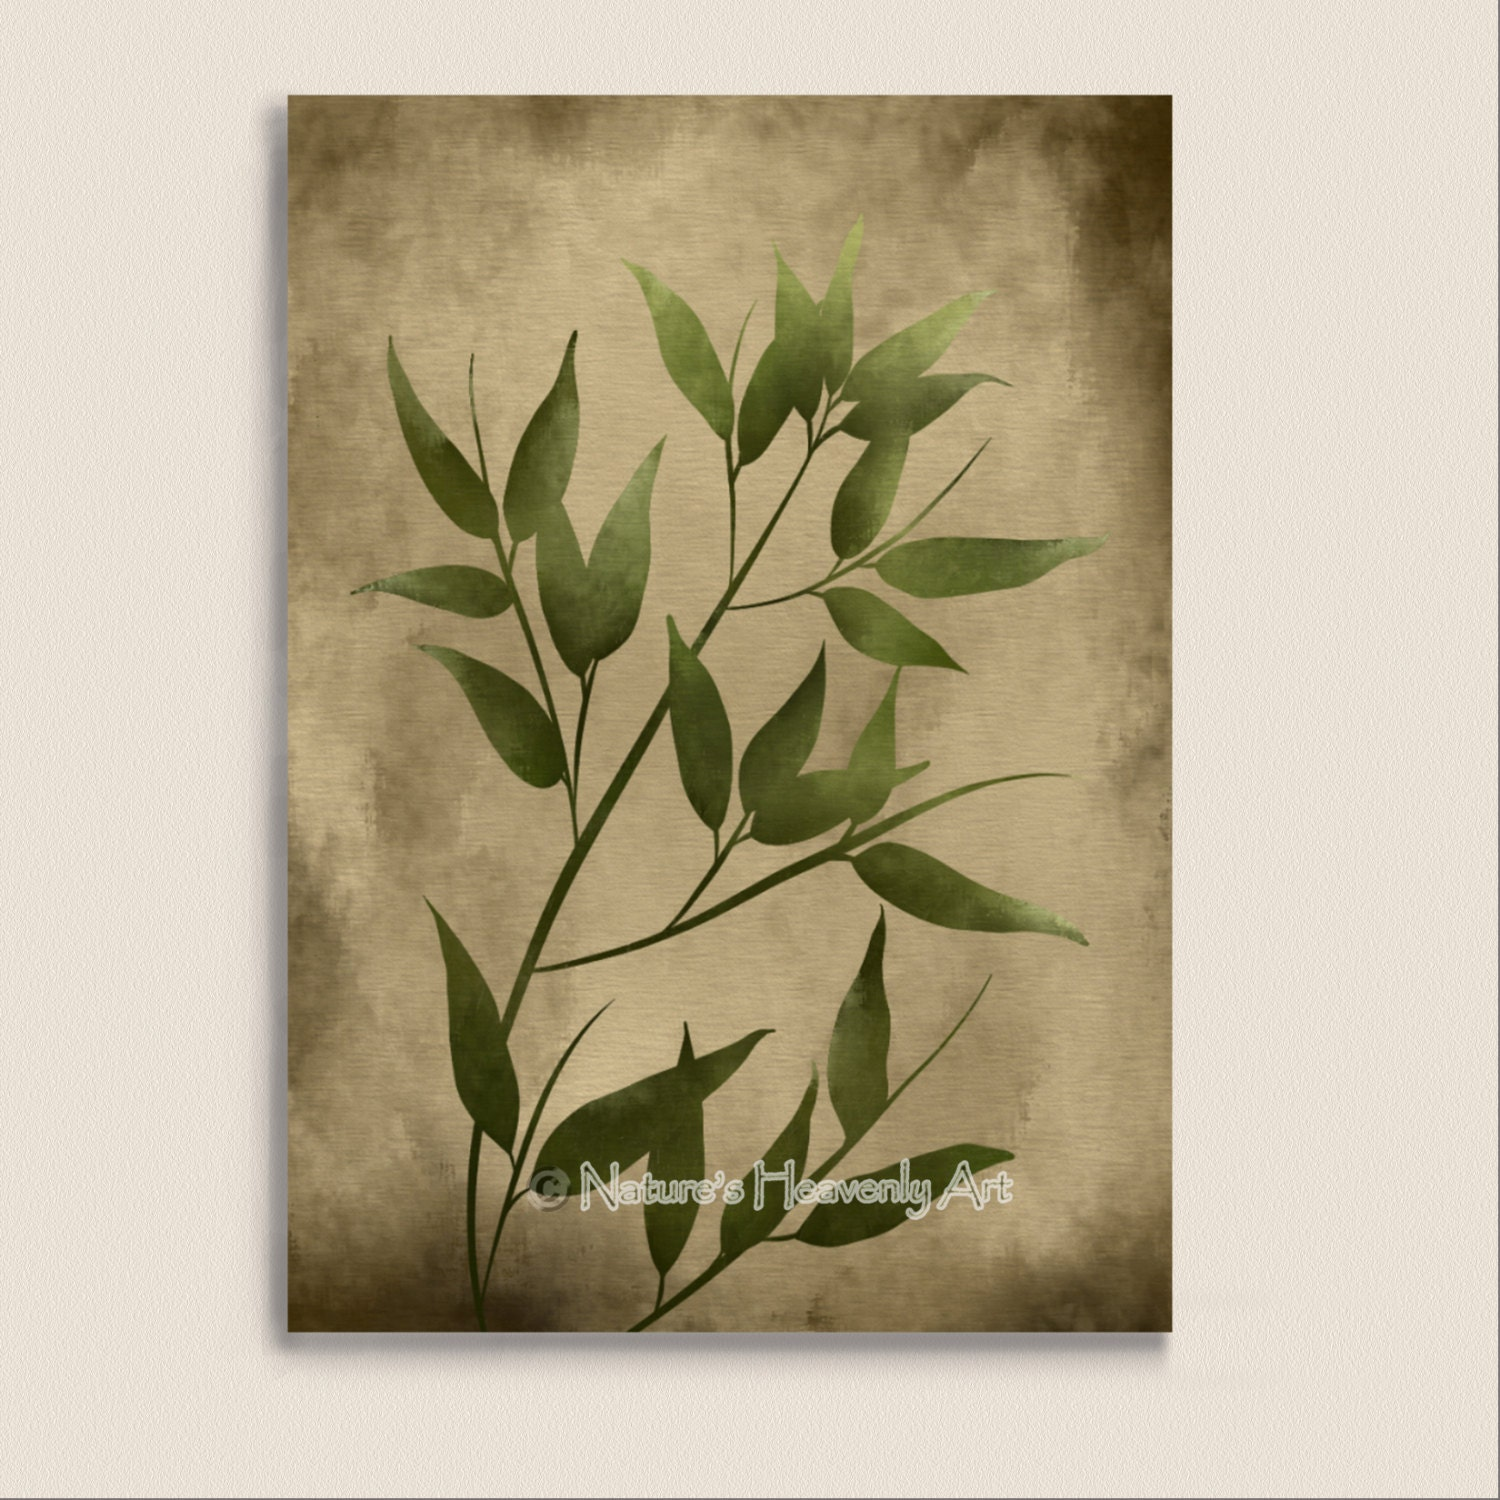 Green leaves bamboo japanese wall decor 5 x 7 print zoom amipublicfo Choice Image